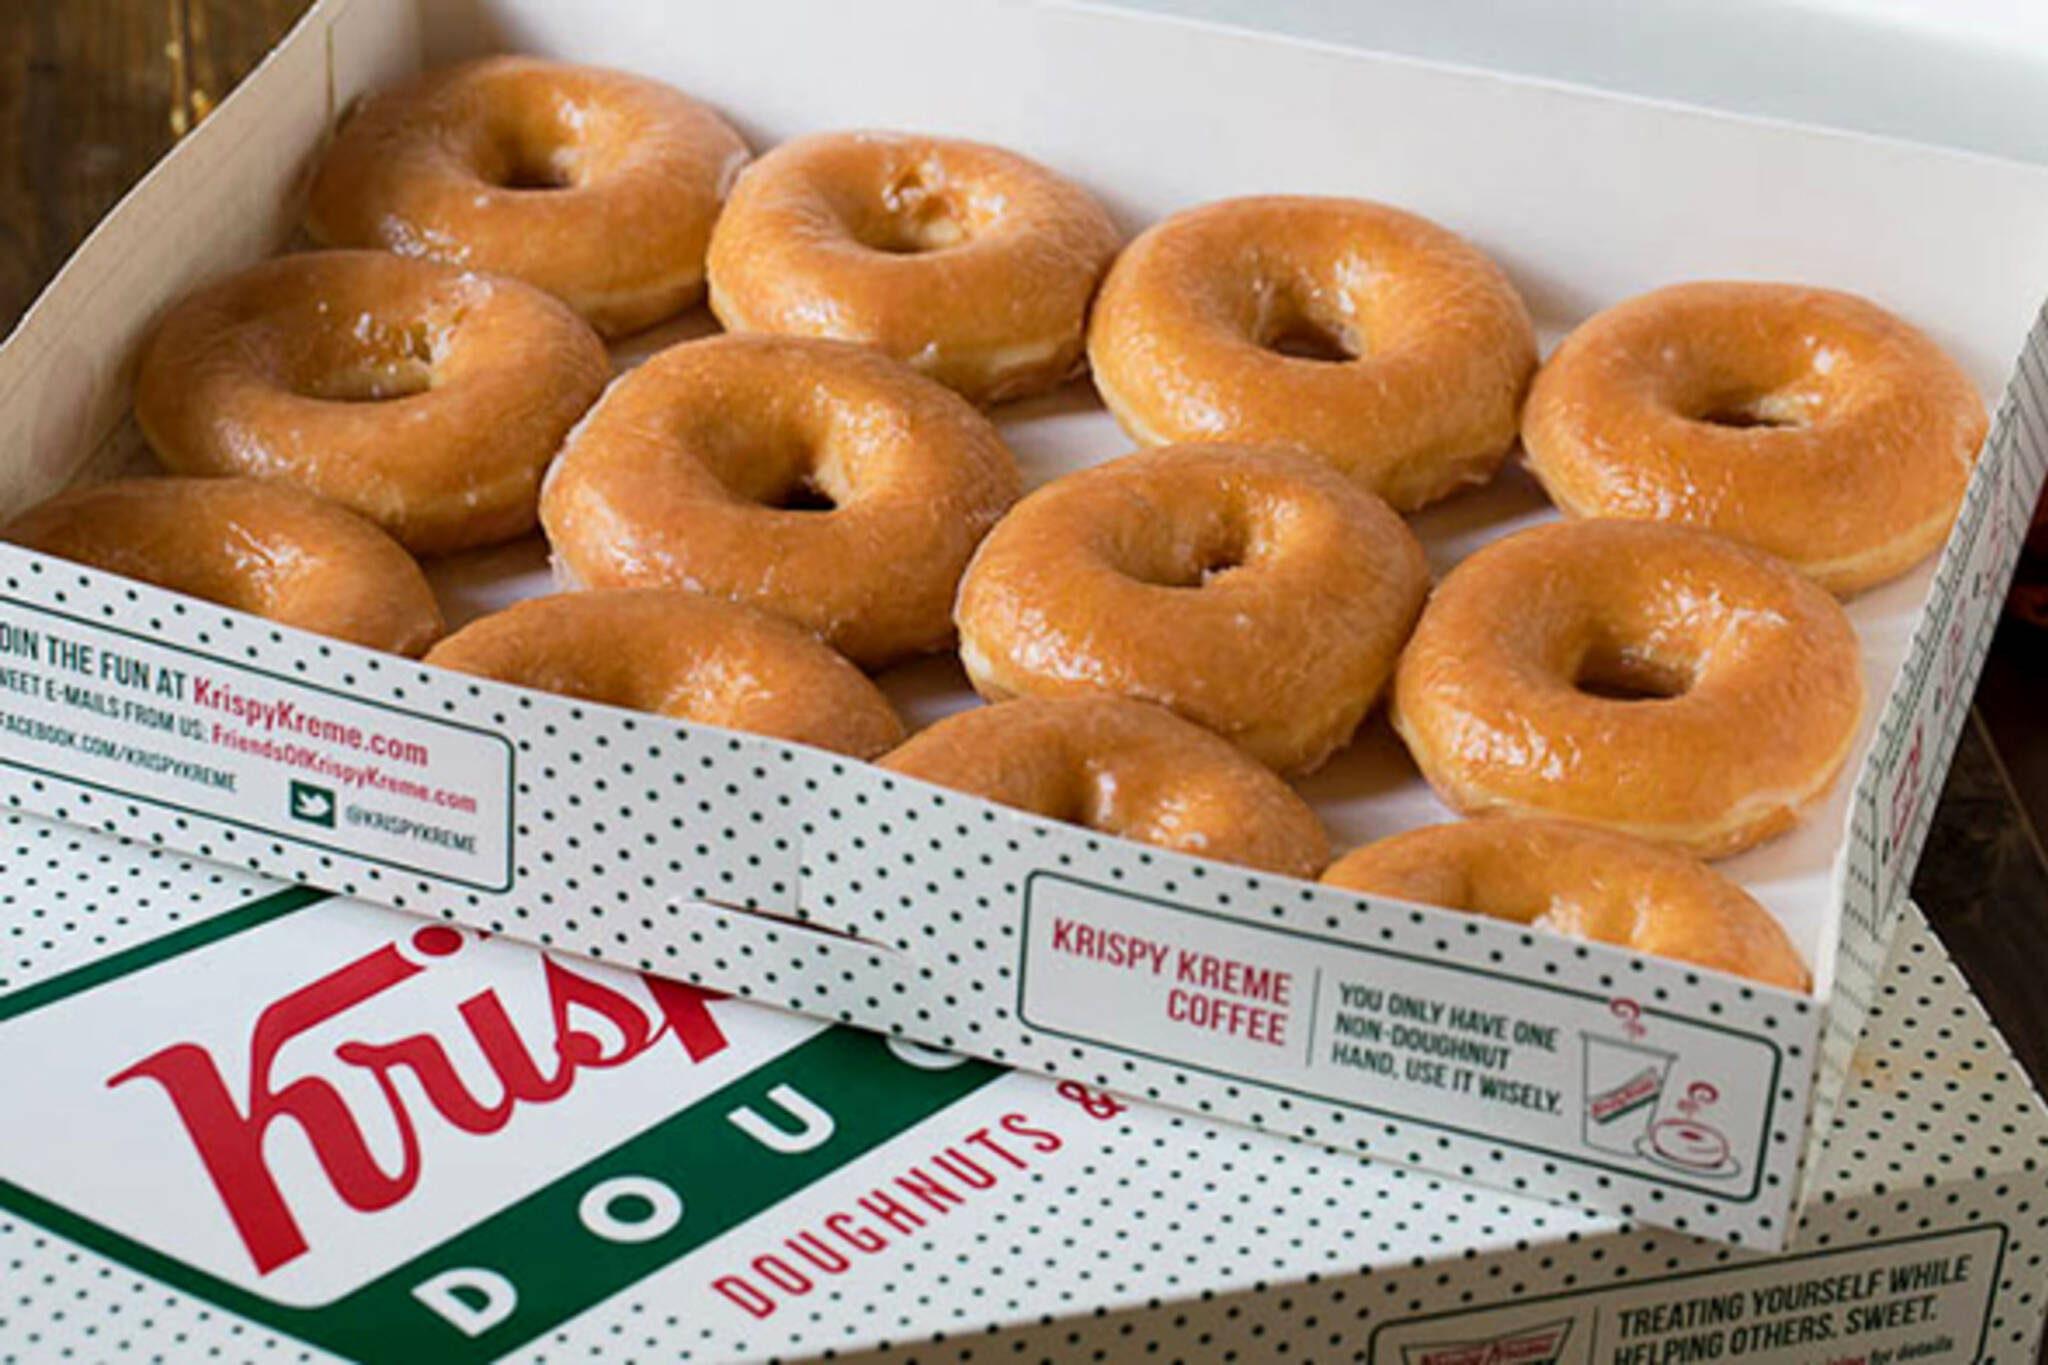 Krispy Kreme is giving away free donuts tomorrow